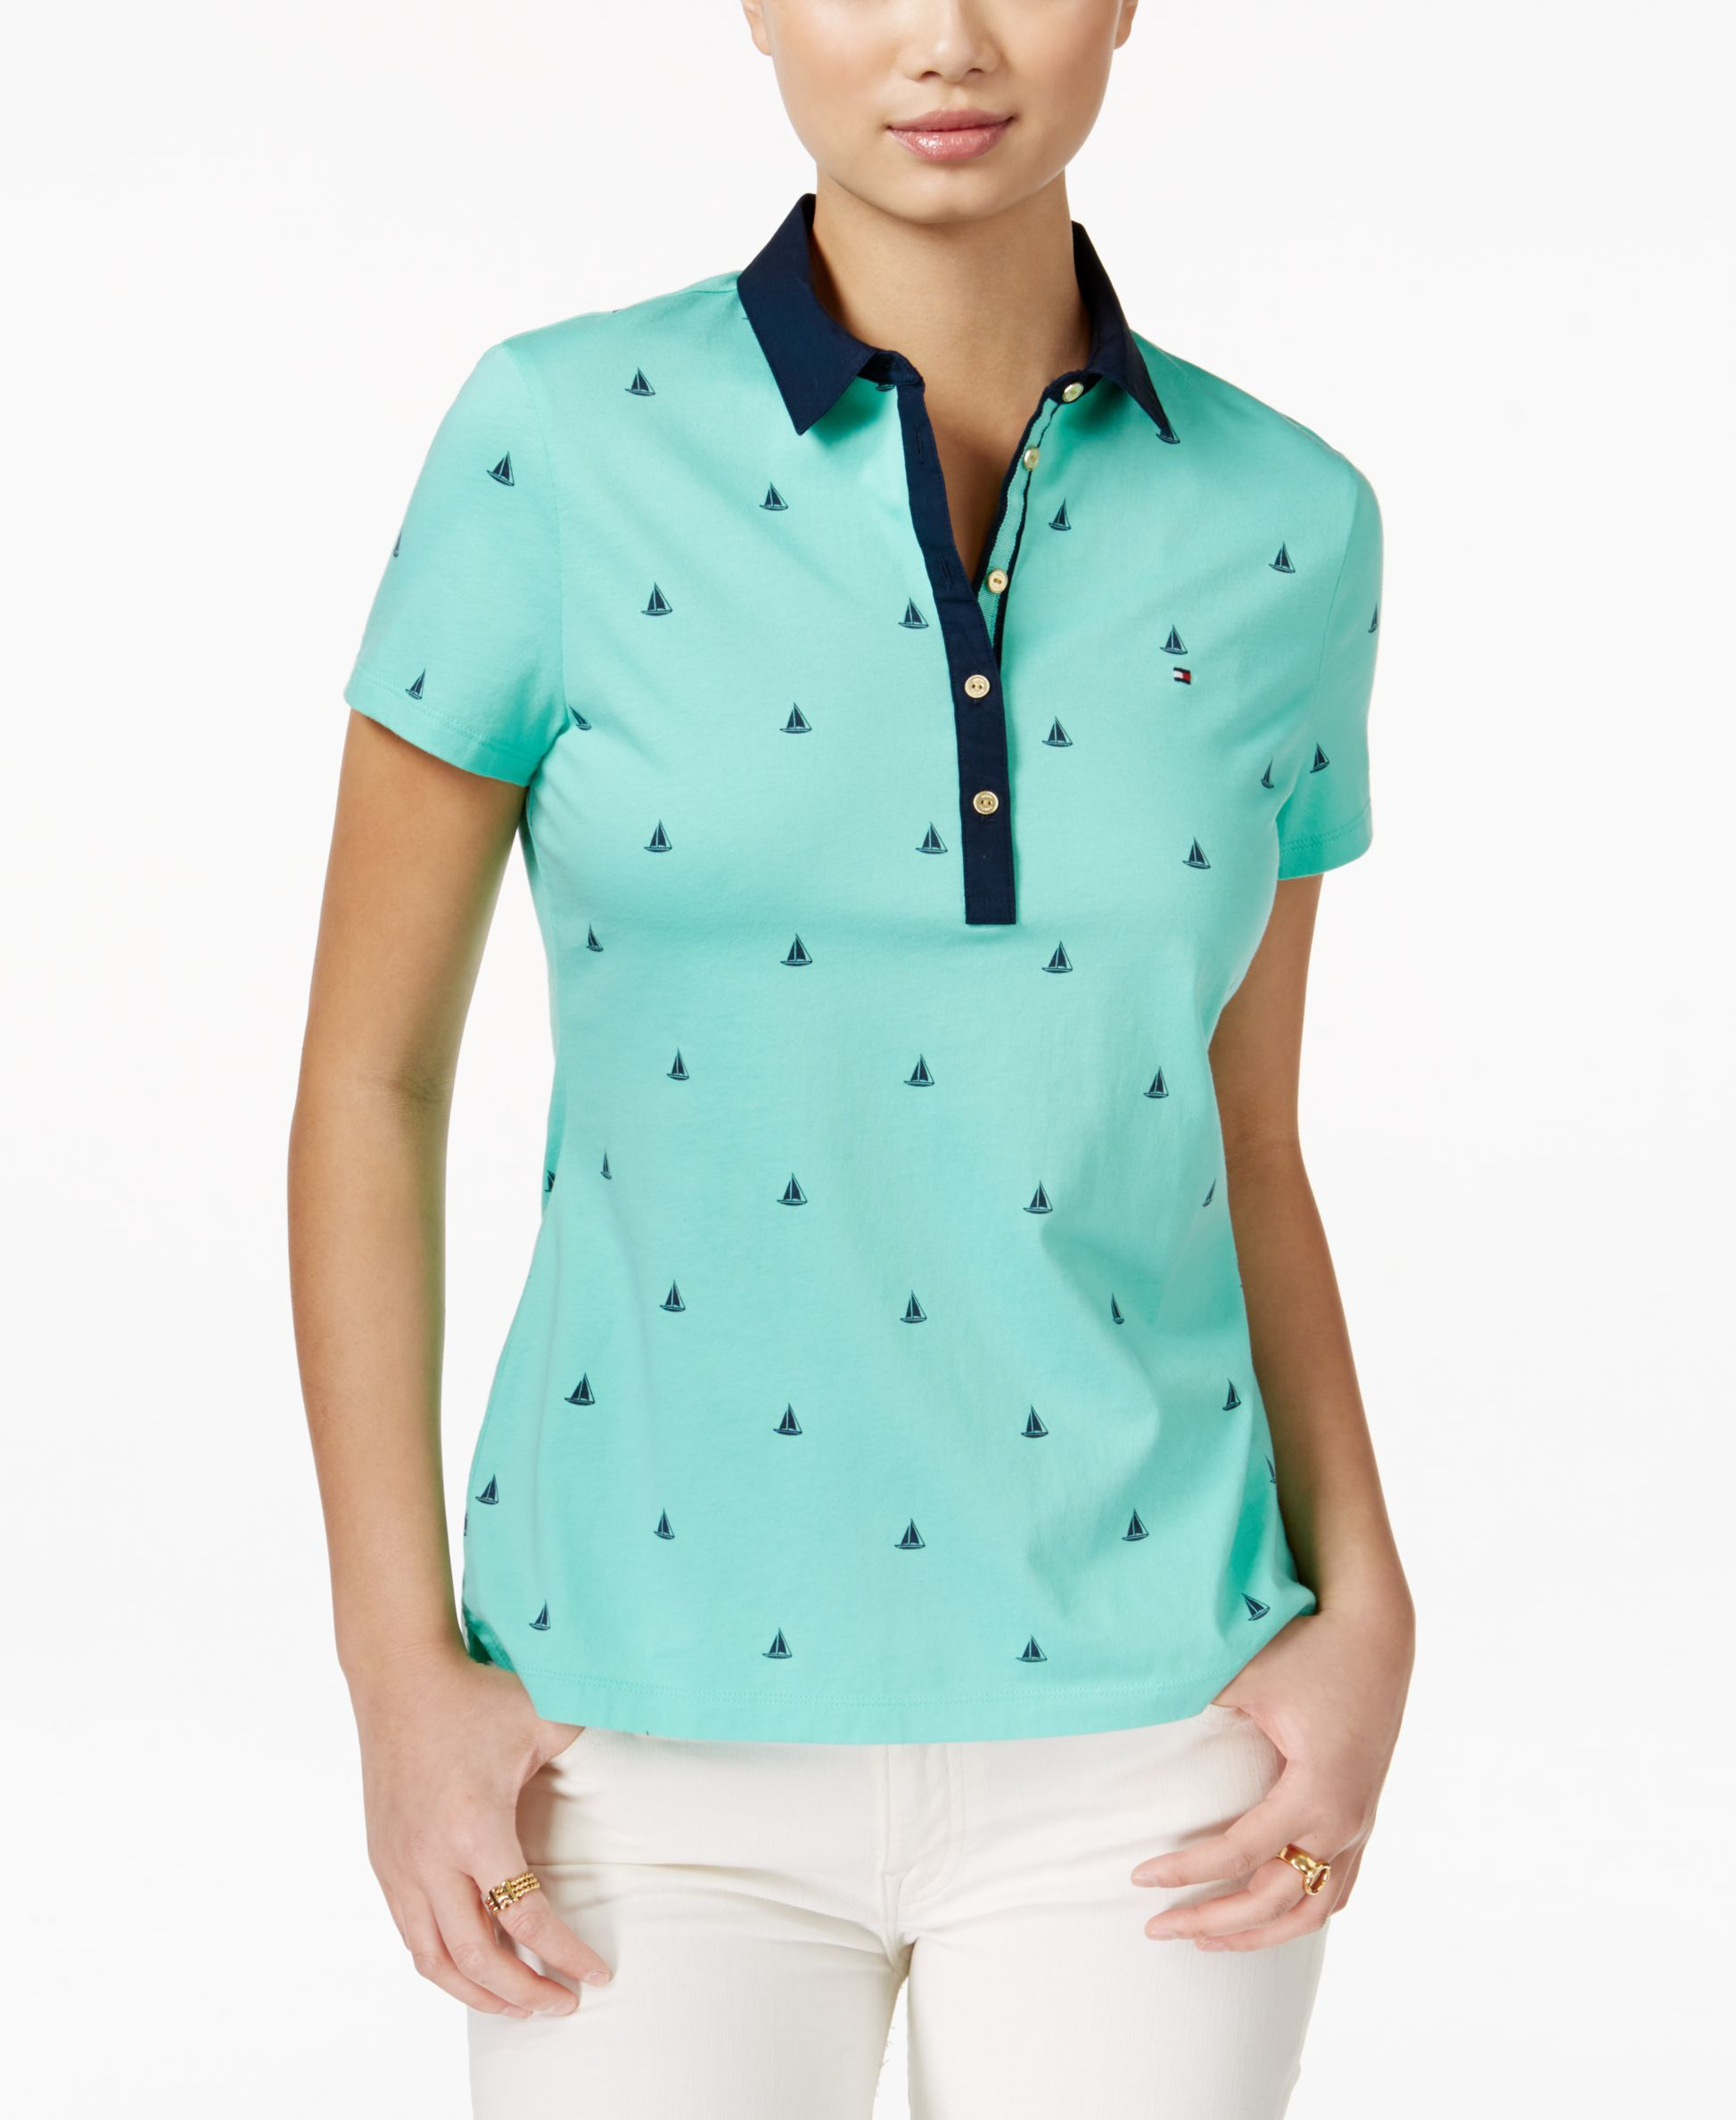 7f214350 Tommy Hilfiger Lobster-Print Polo Top | Tommy Hilfiger in 2018 ...